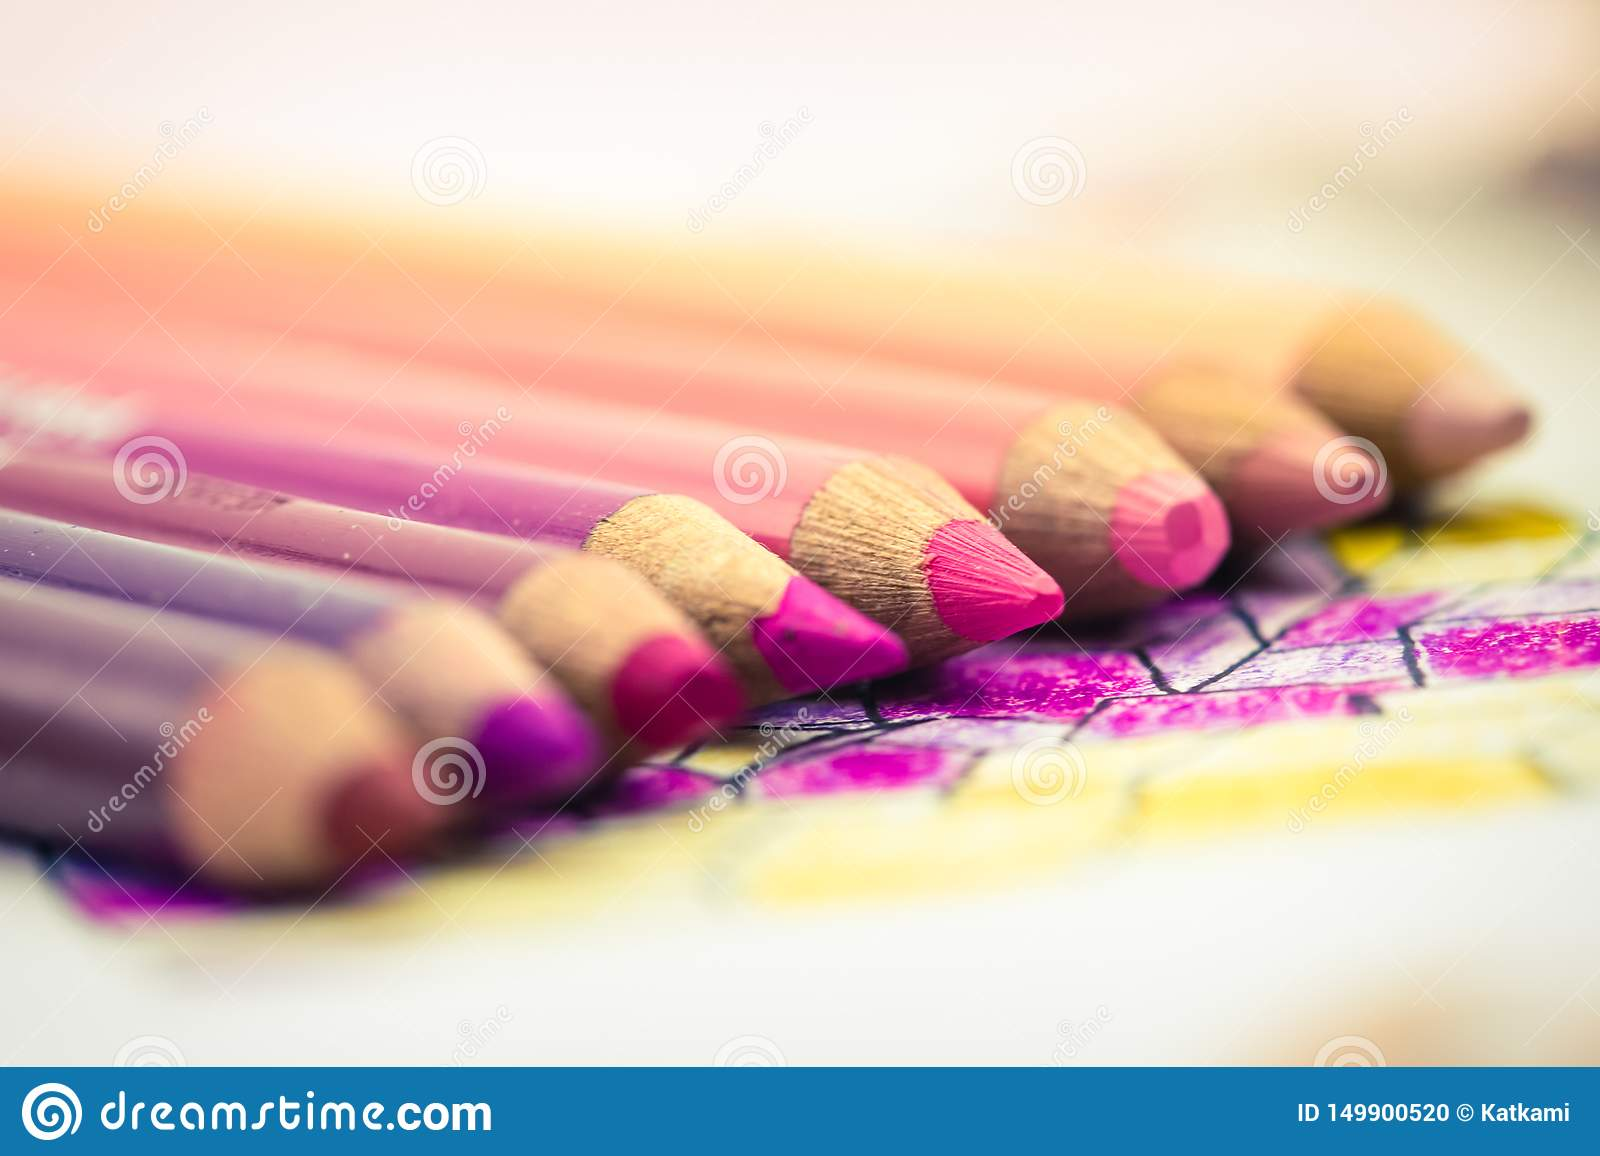 Pink Colored Pencils Lined up in a Gradient